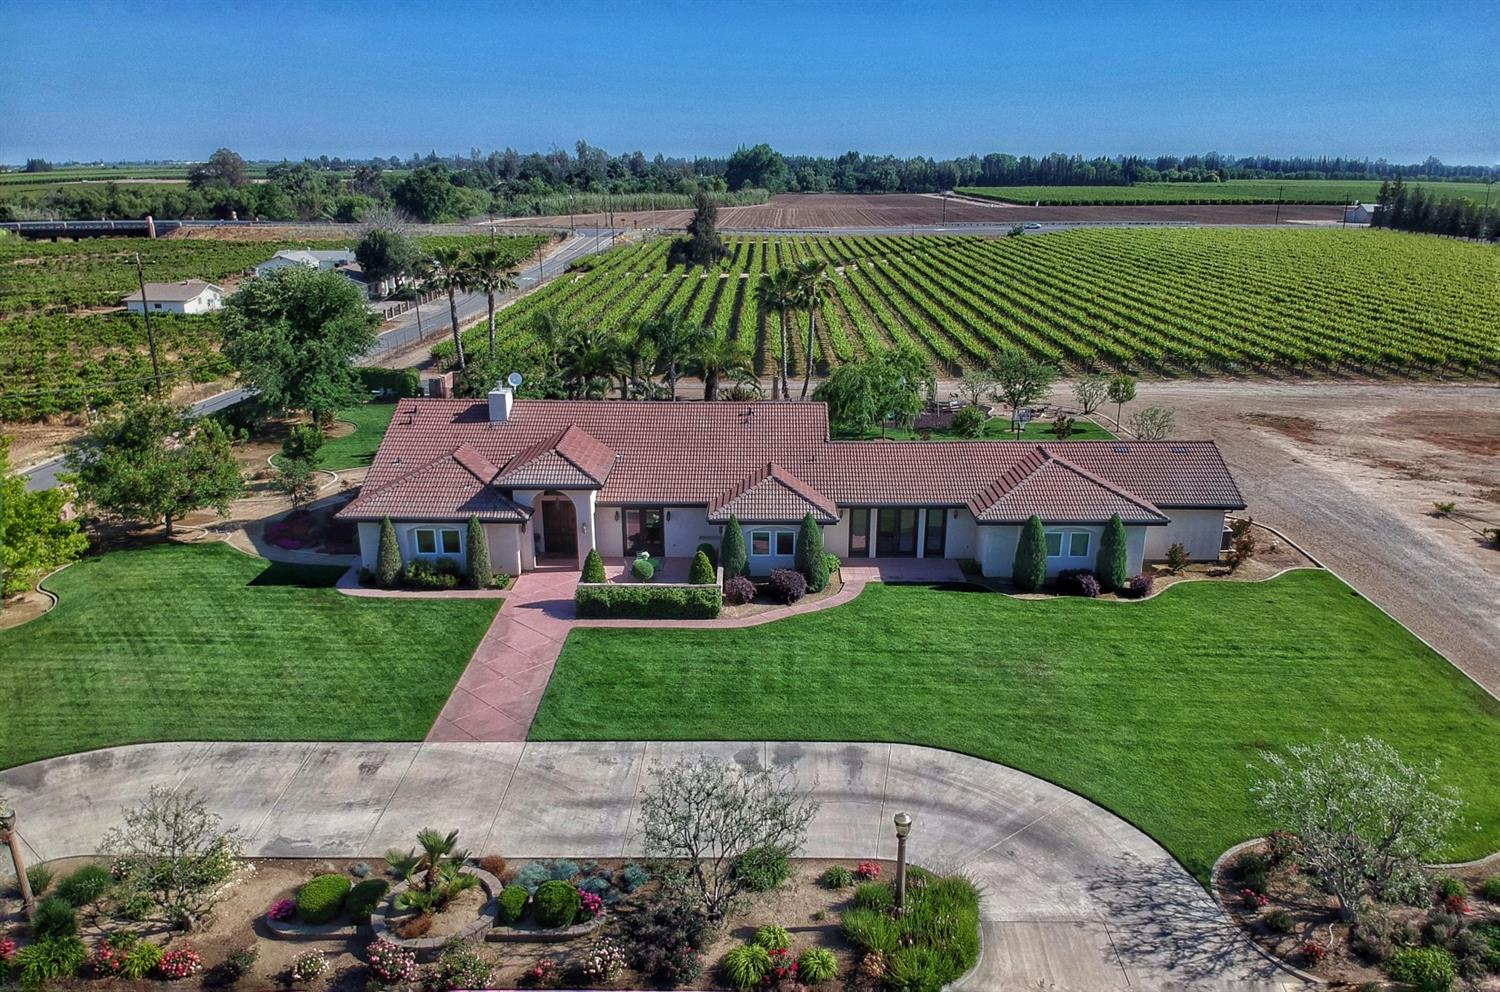 Stunning vineyard estate in Clay School District! Lovingly cared for by the original owners, this home shines with pride of ownership. Entering the home, you'll be greeted by a barreled-ceiling entry way, beautiful hardwood floors, and towering vaulted ceilings with authentic wood beams. A chef's kitchen opens to the family room and includes custom cabinetry, a center island, a gas cooktop and granite counter tops. The master suite is a true retreat with french doors to the patio and a luxurious bathroom that includes a large spa tub, spacious shower, dual sinks and a vanity space. Three additional bedrooms, 2 additional bathrooms, an office, and a game room complete the floor plan. Paradise can be found in the backyard with the sparkling pool and roomy patio area. The grounds feature manicured landscaping, a family orchard, OWNED solar, and a second home site that has been county approved (per seller). Just over 15 fully fenced acres, most of which is planted to Scarlet table grapes.